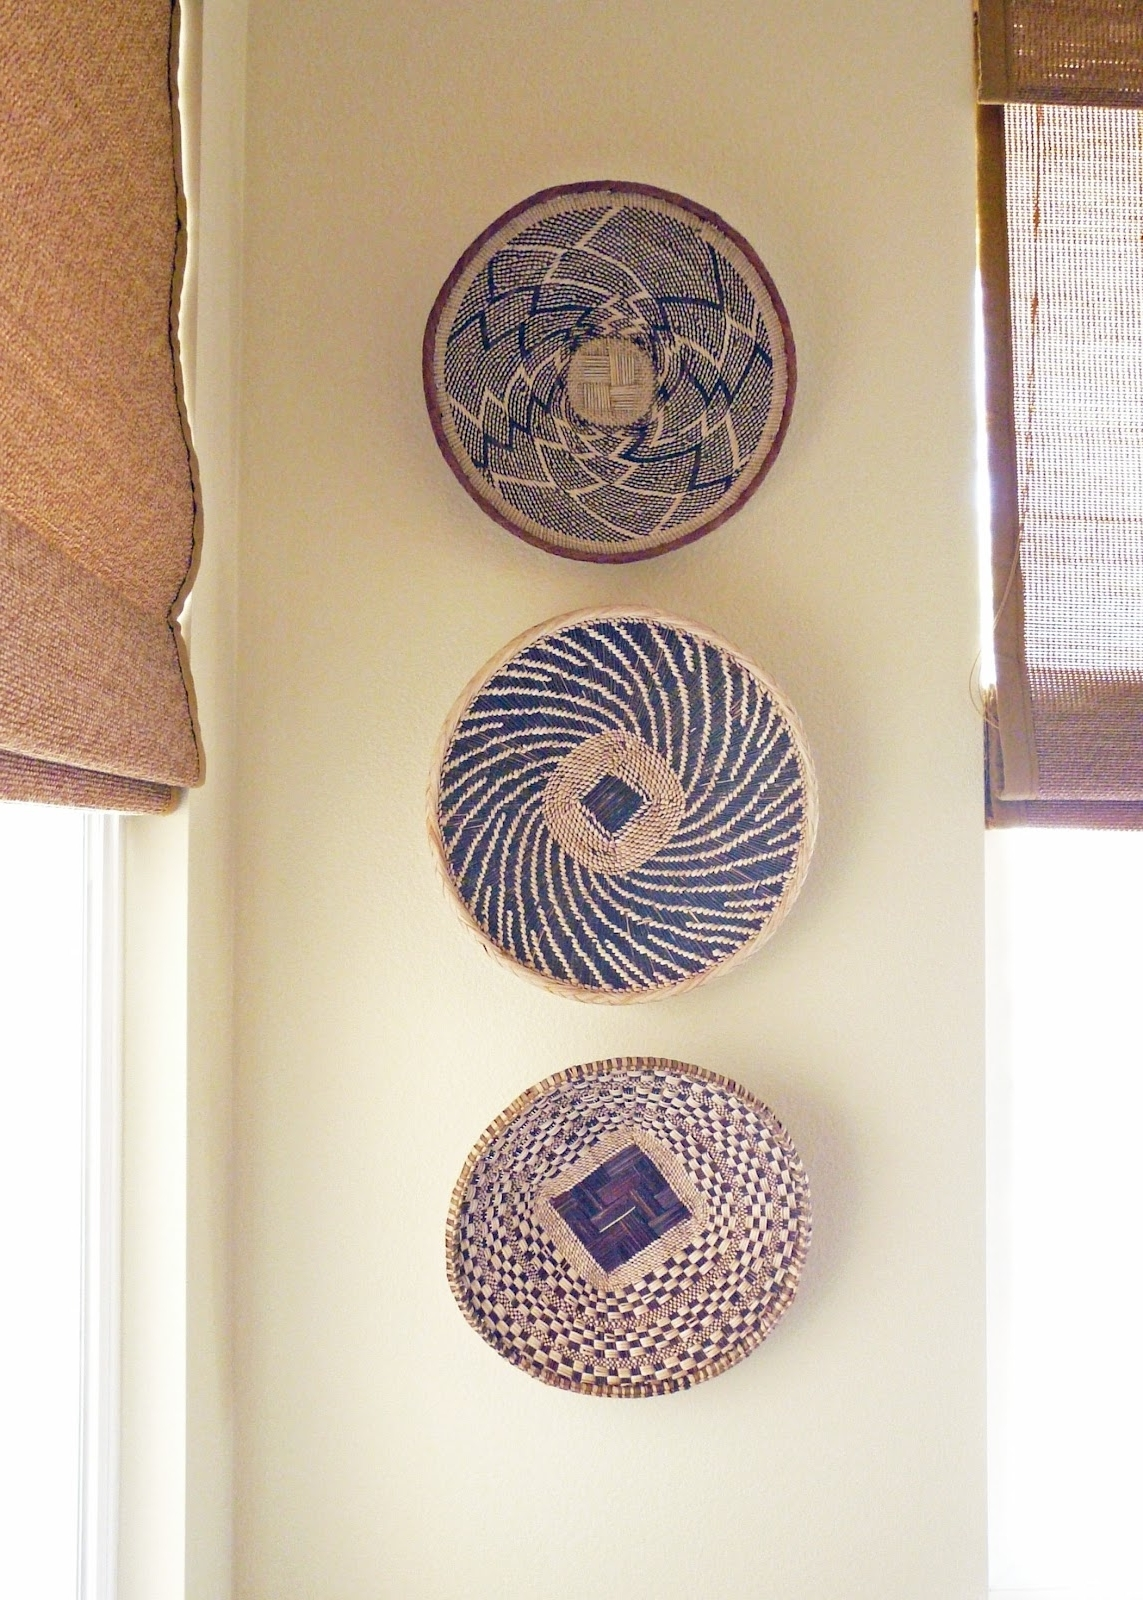 Wall Decor: Good Look Baskets As Wall Decor Woven Wall Baskets Within Most Recent African Wall Accents (View 14 of 15)